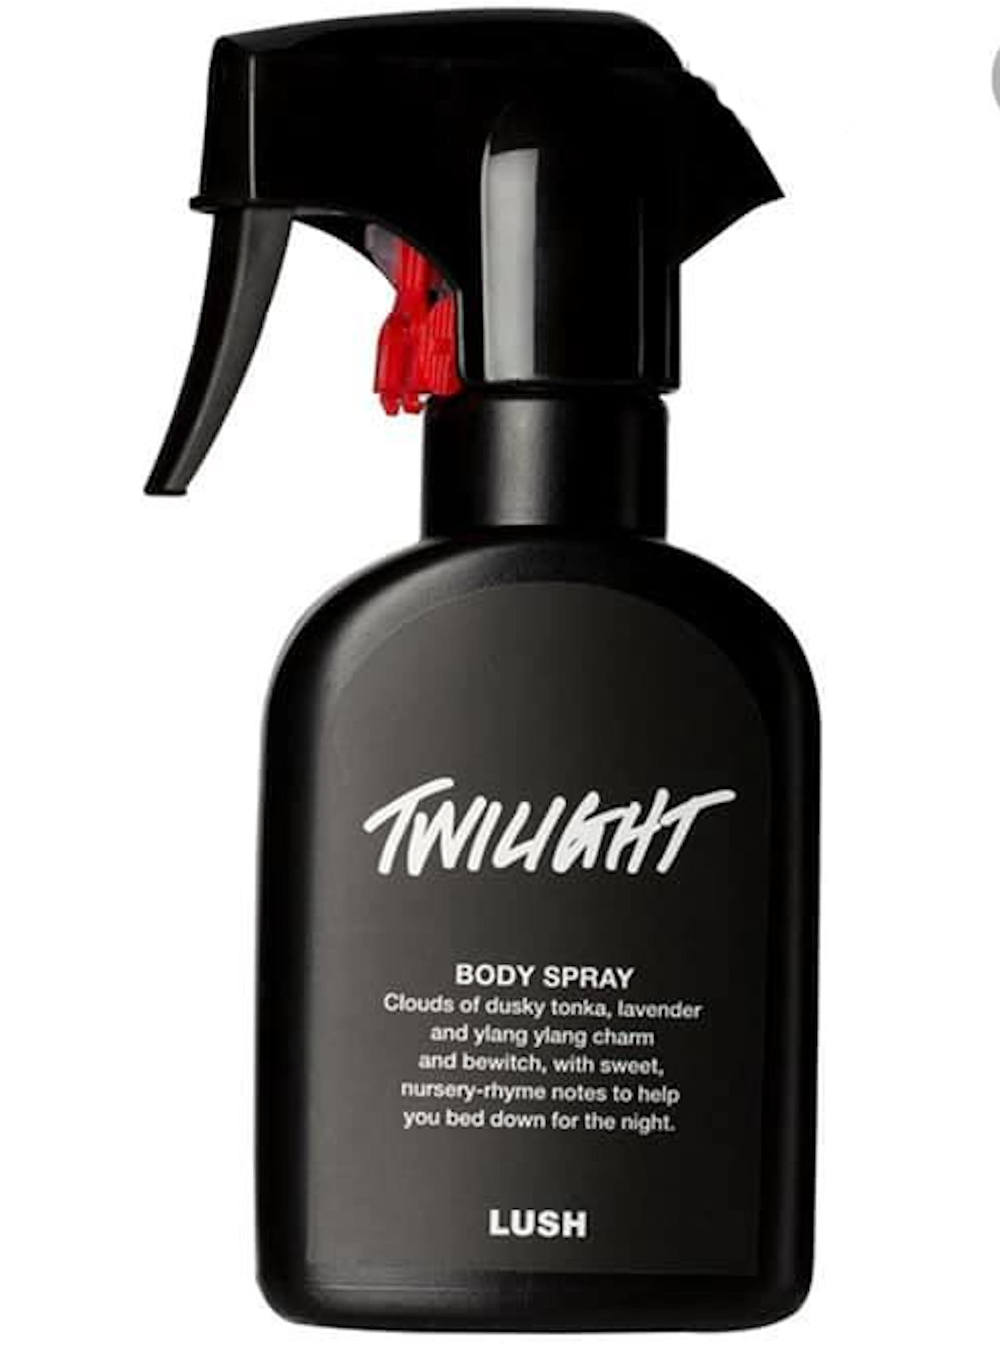 Lush body spray